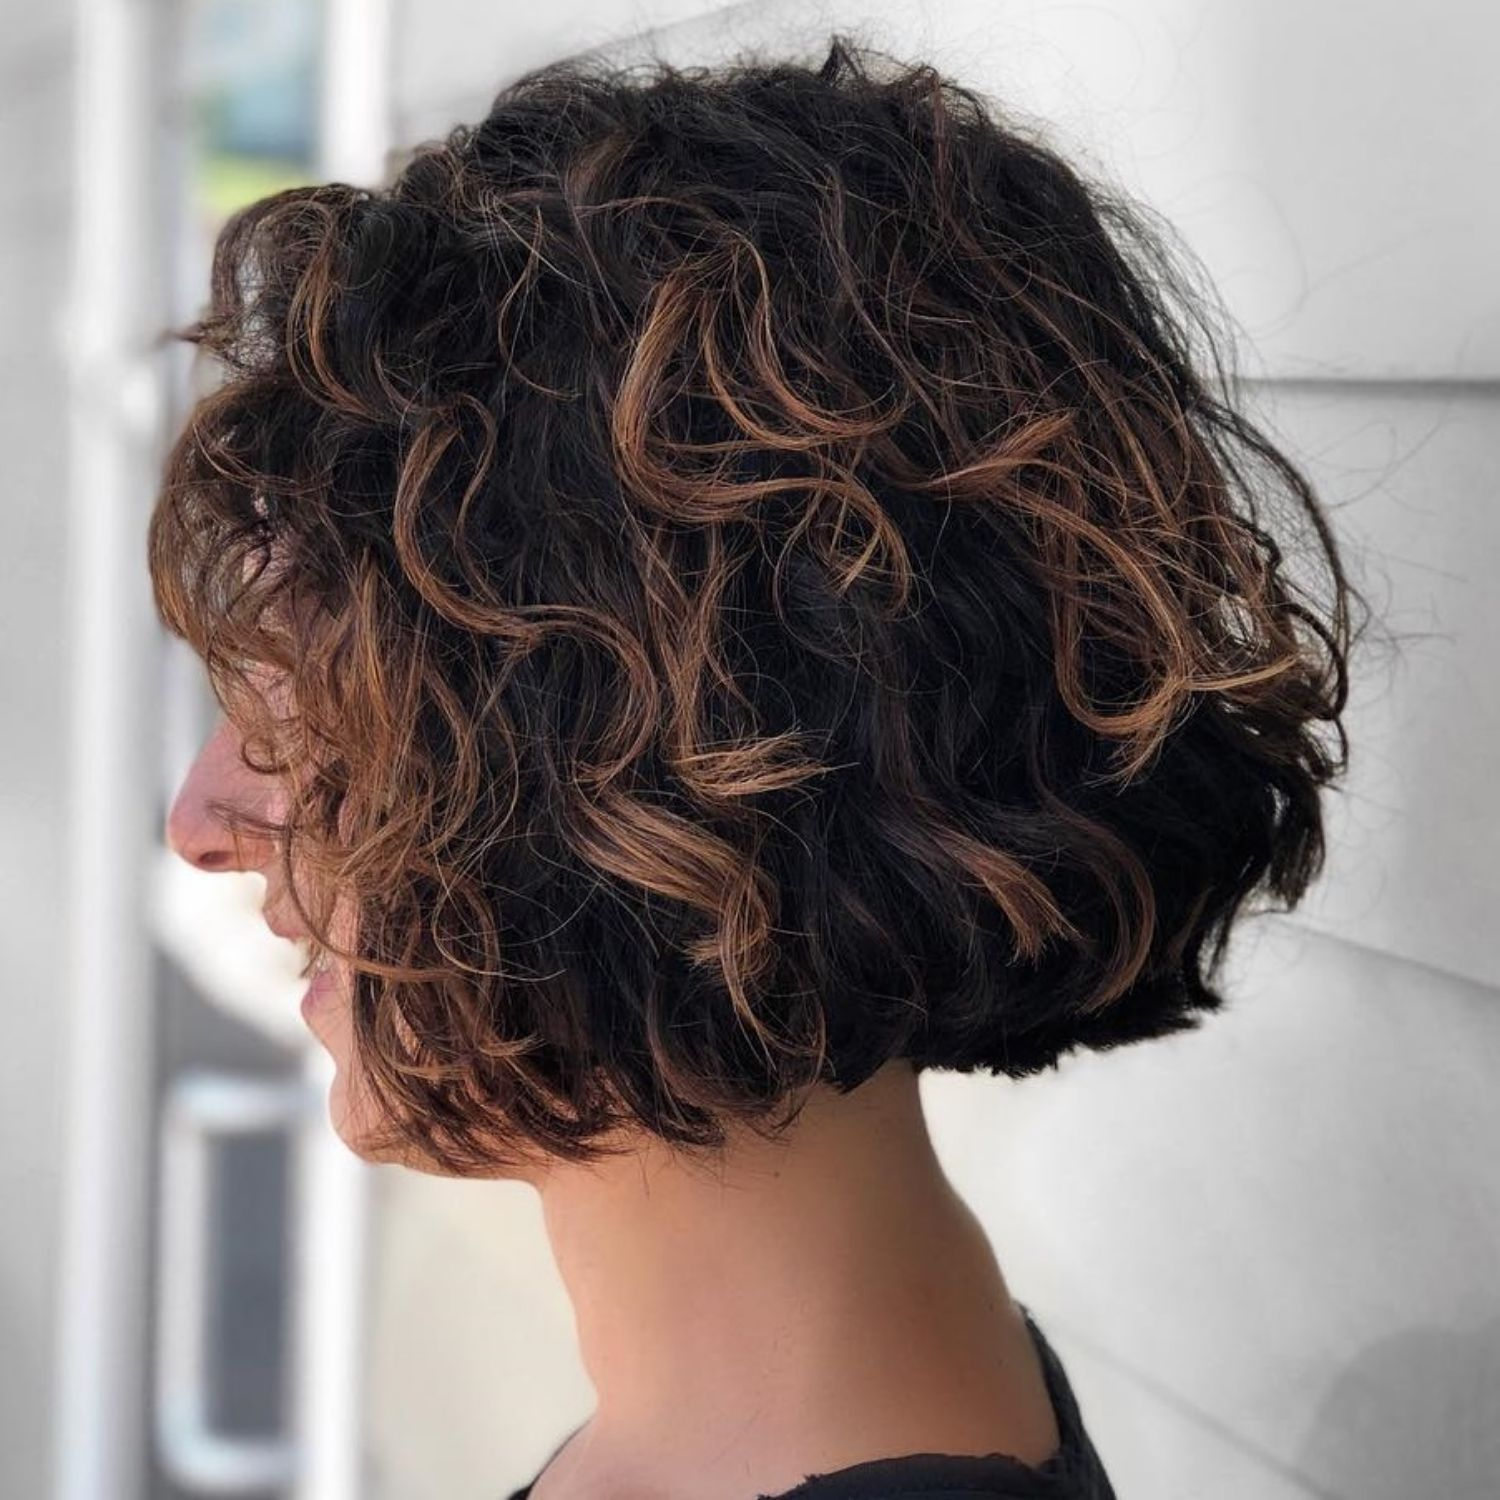 65 Different Versions of Curly Bob Hairstyle in 2019 | Short curly hair, Choppy bob hairstyles ...